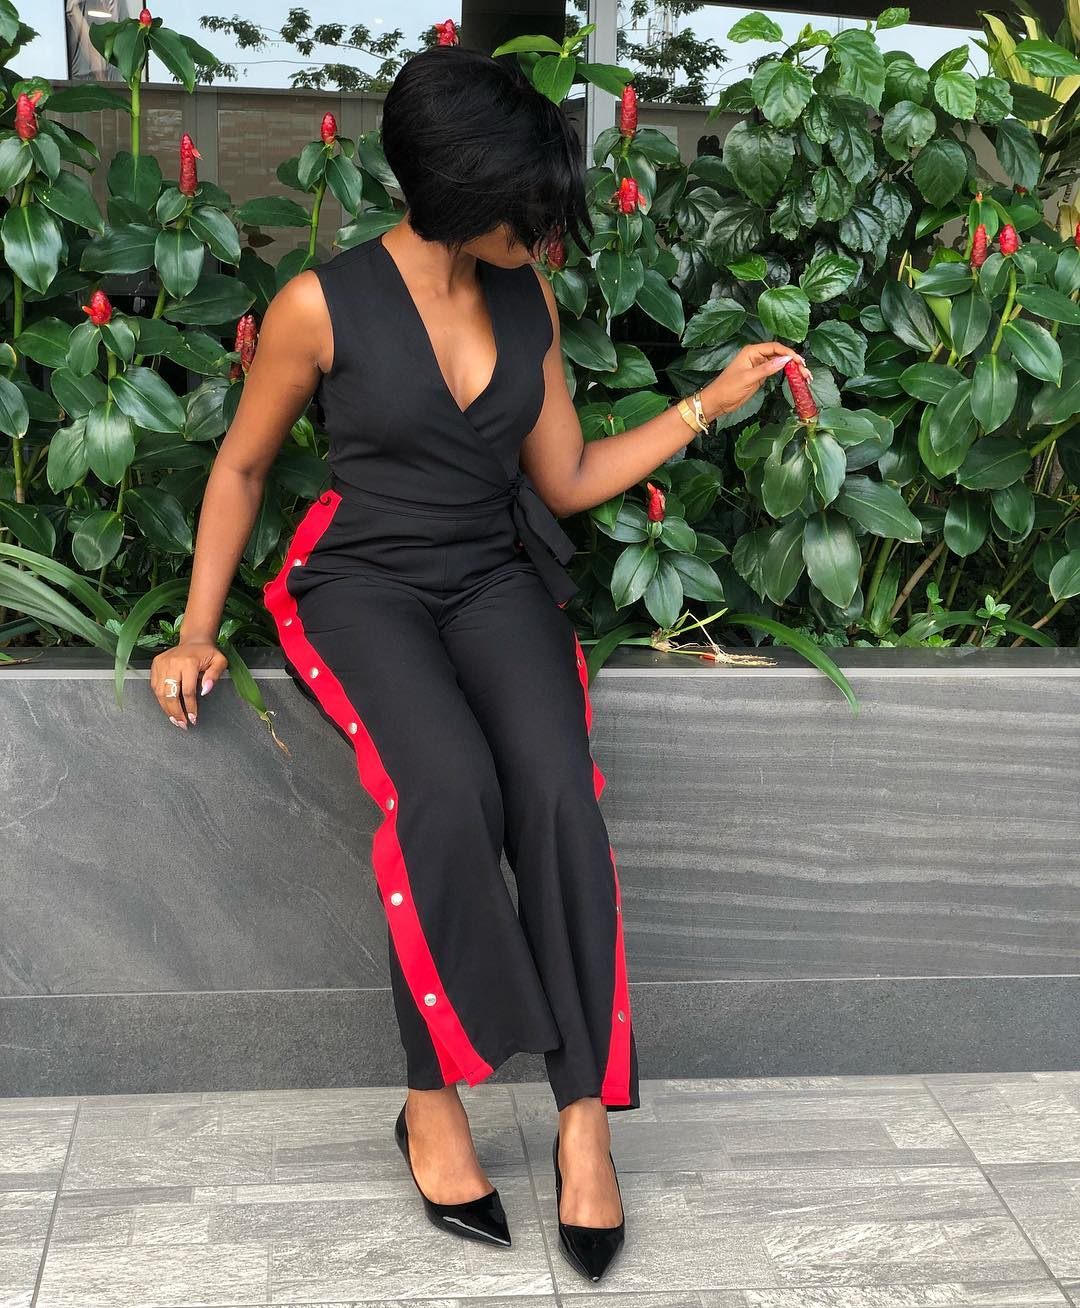 Photos, 'Minding my business' BamBam slays hot in new photos, Latest Nigeria News, Daily Devotionals & Celebrity Gossips - Chidispalace